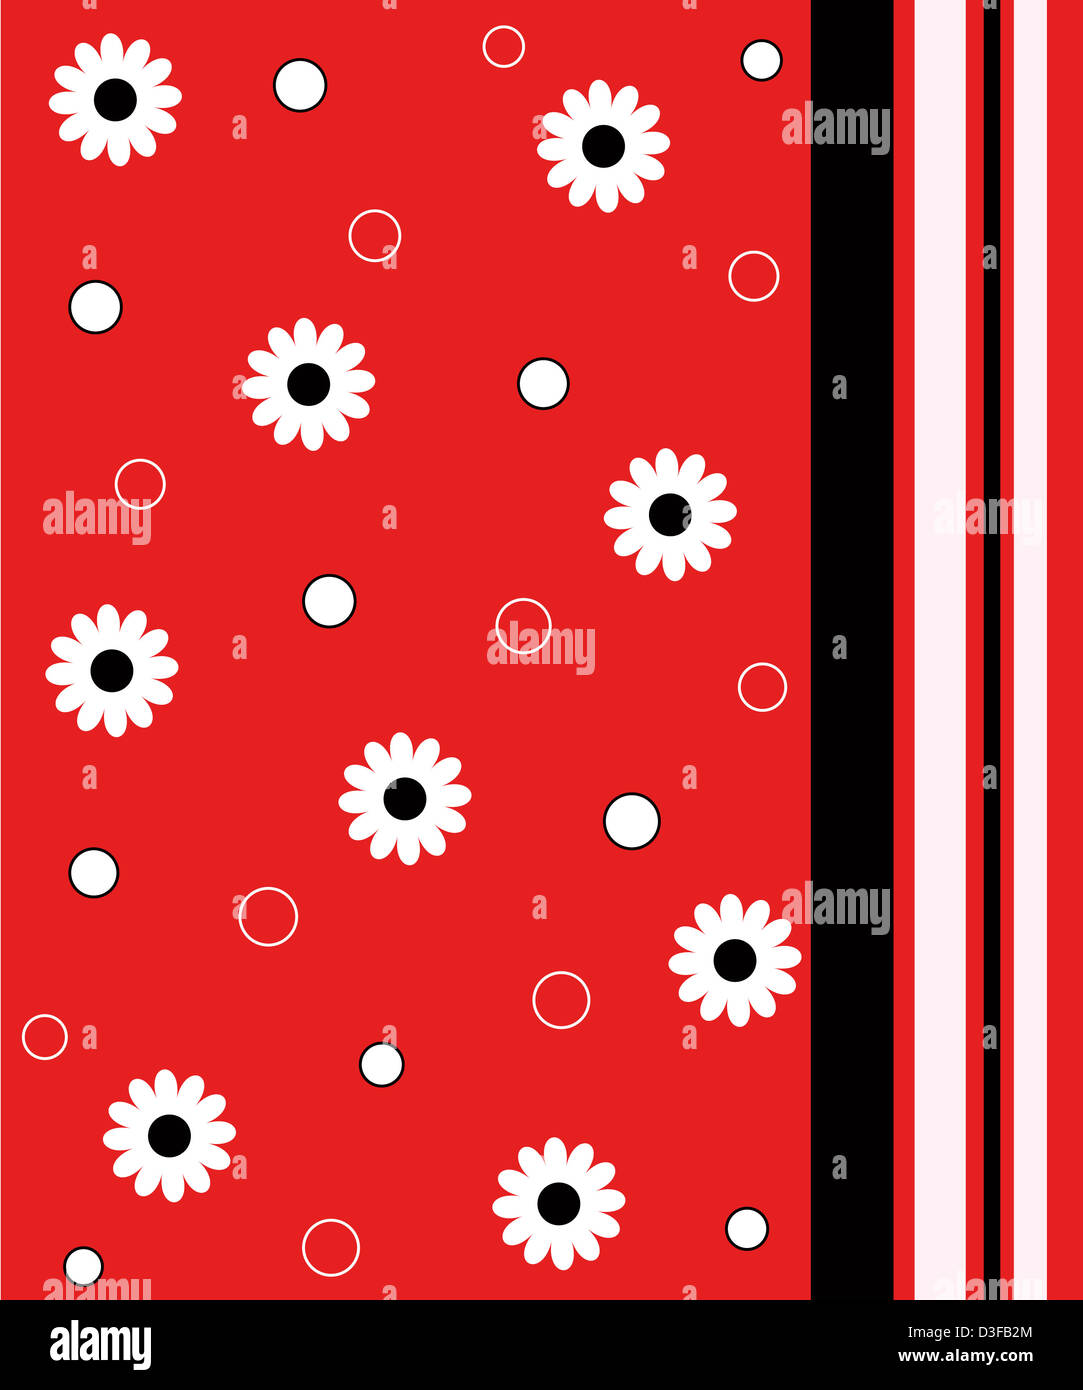 Flowers and stripes pattern Stock Photo